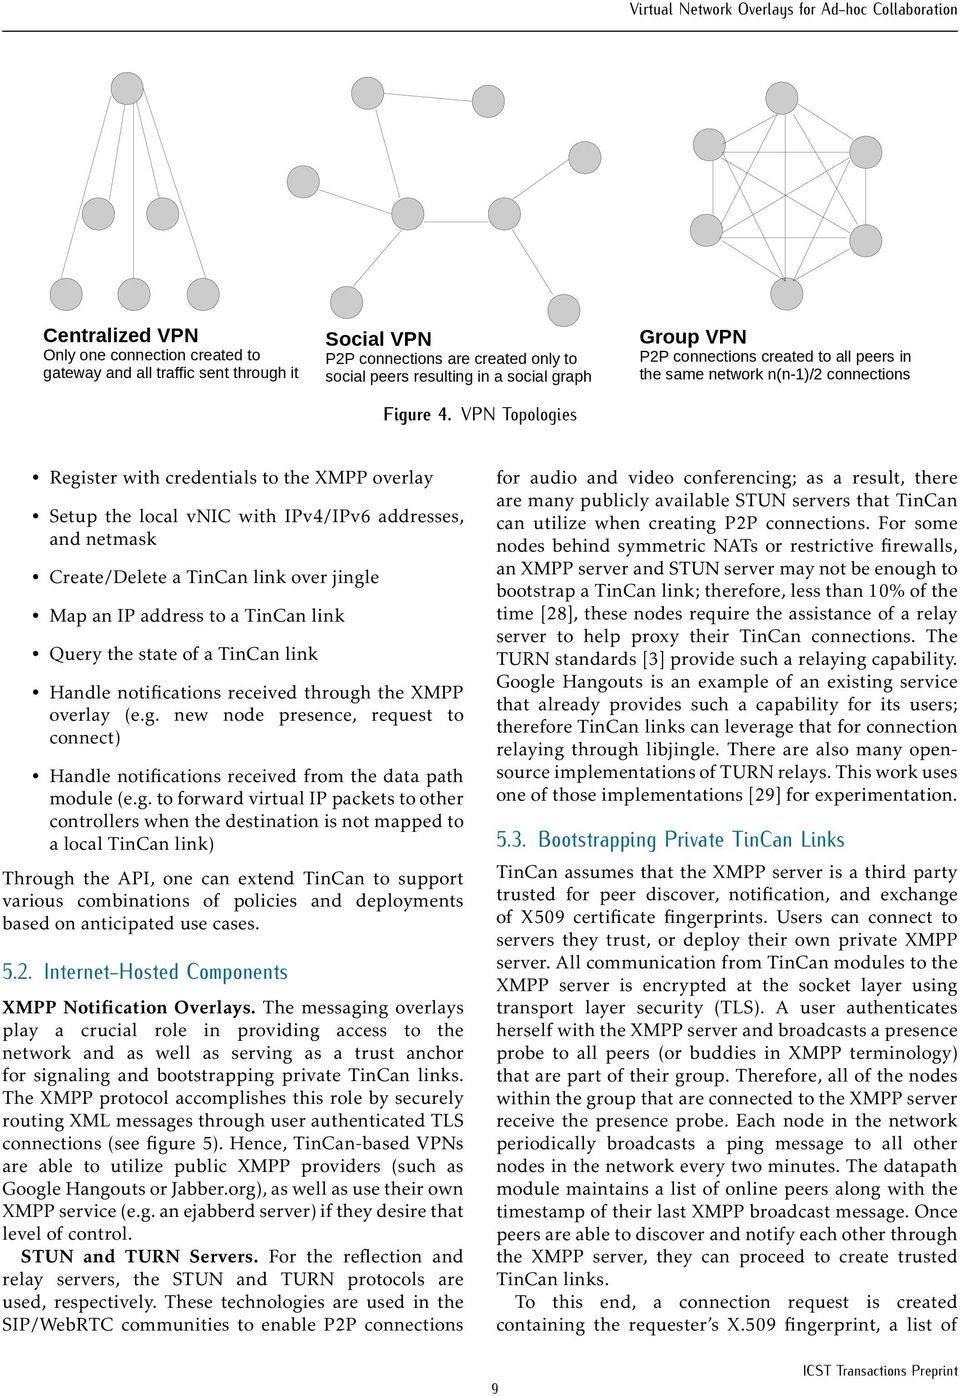 VPN Topologies Group VPN P2P connections created to all peers in the same network n(n-1)/2 connections Register with credentials to the XMPP overlay Setup the local vnic with IPv4/IPv6 addresses, and